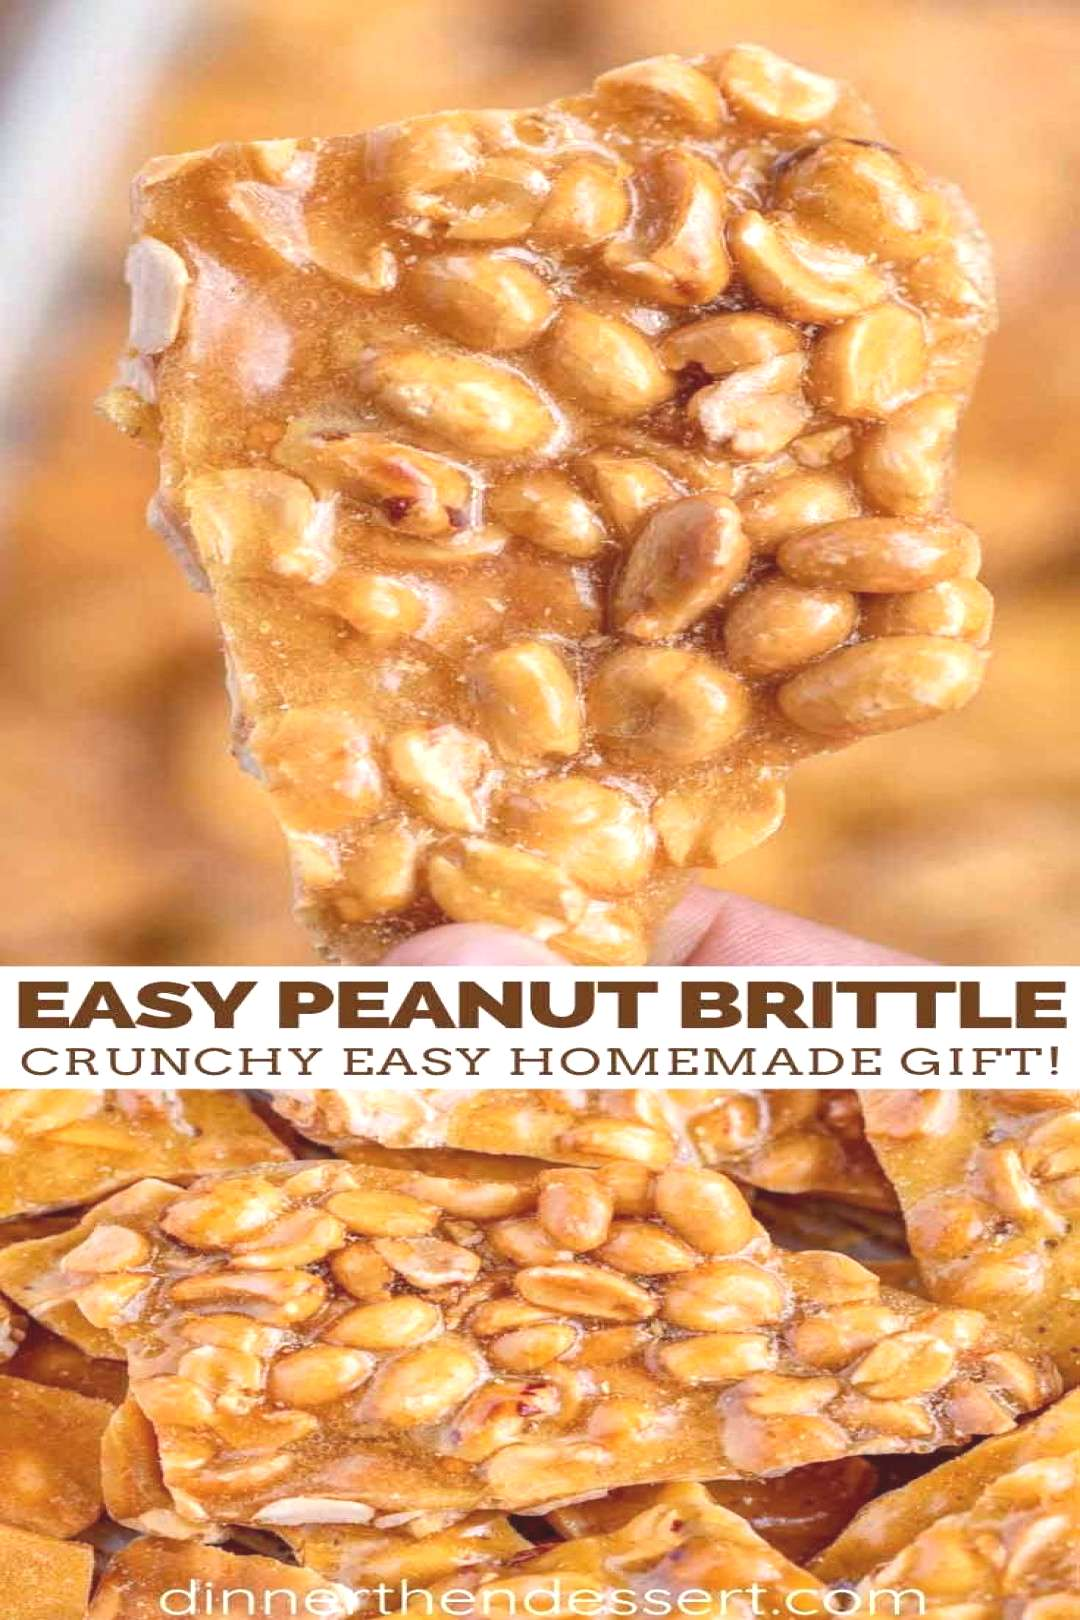 Peanut Brittle is the PERFECT party dessert, made with butter, peanuts, and corn syrup, its sweet,